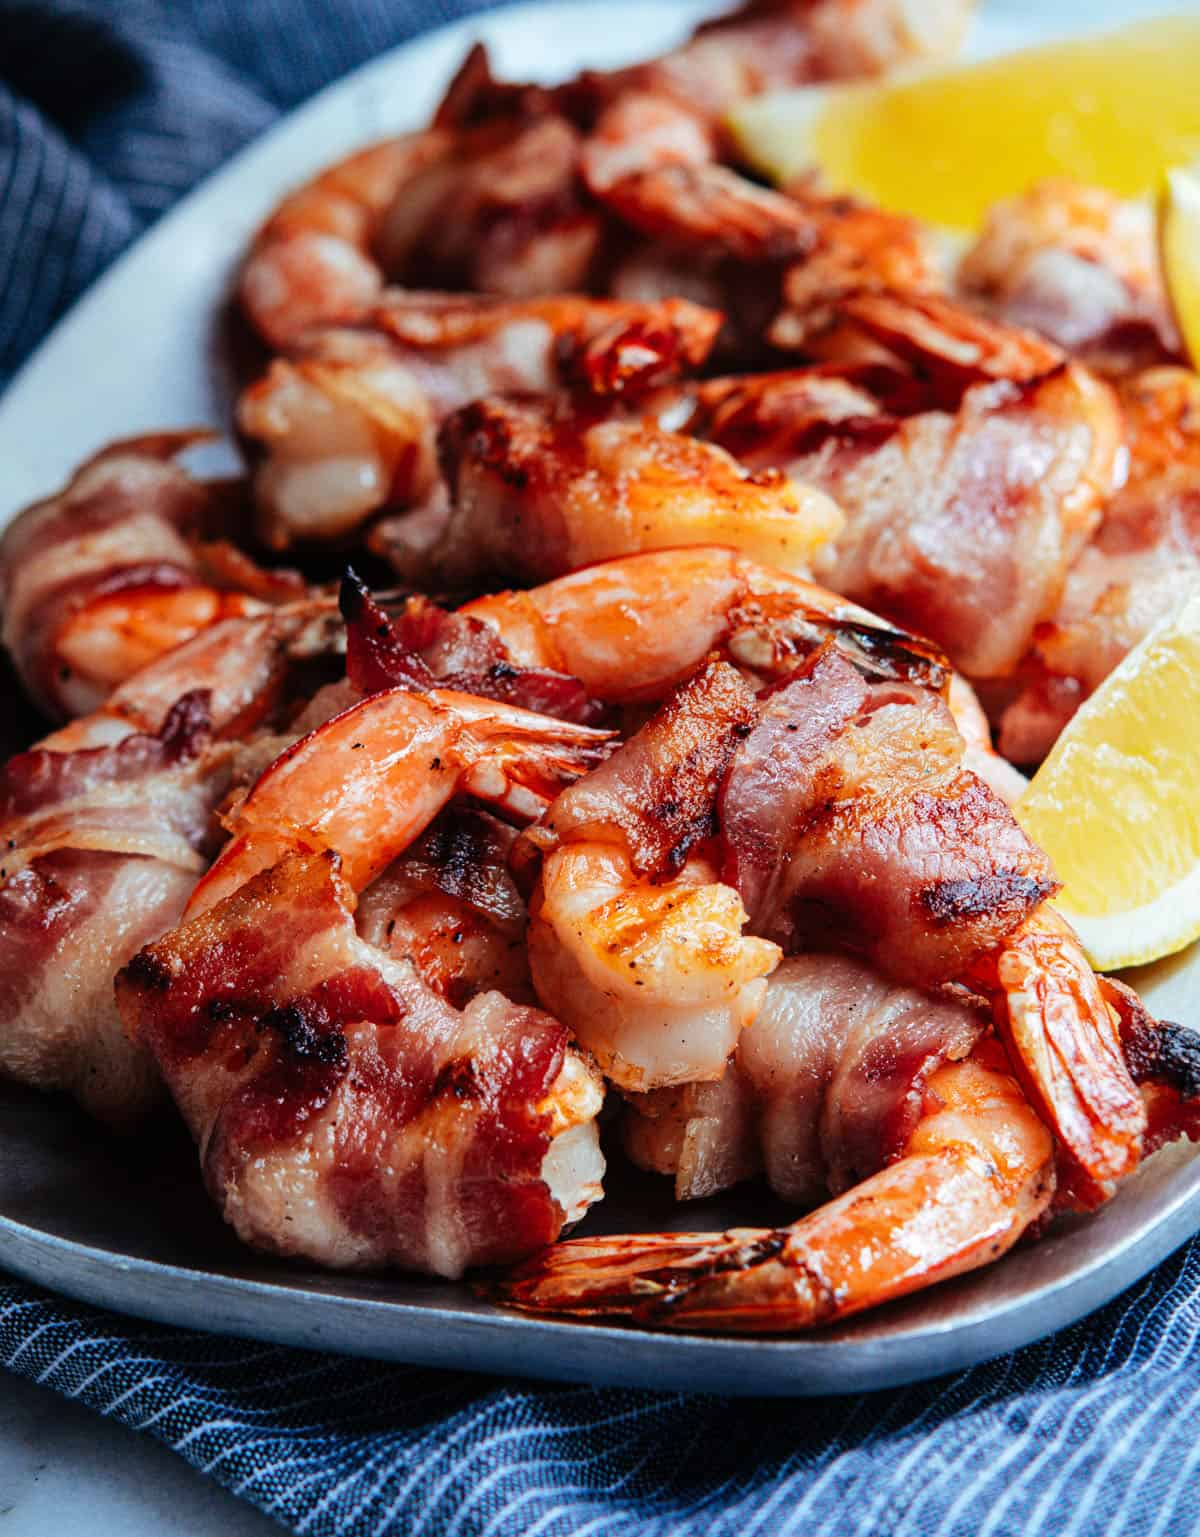 Grilled Bacon Wrapped Shrimp served on a stainless steel platter.